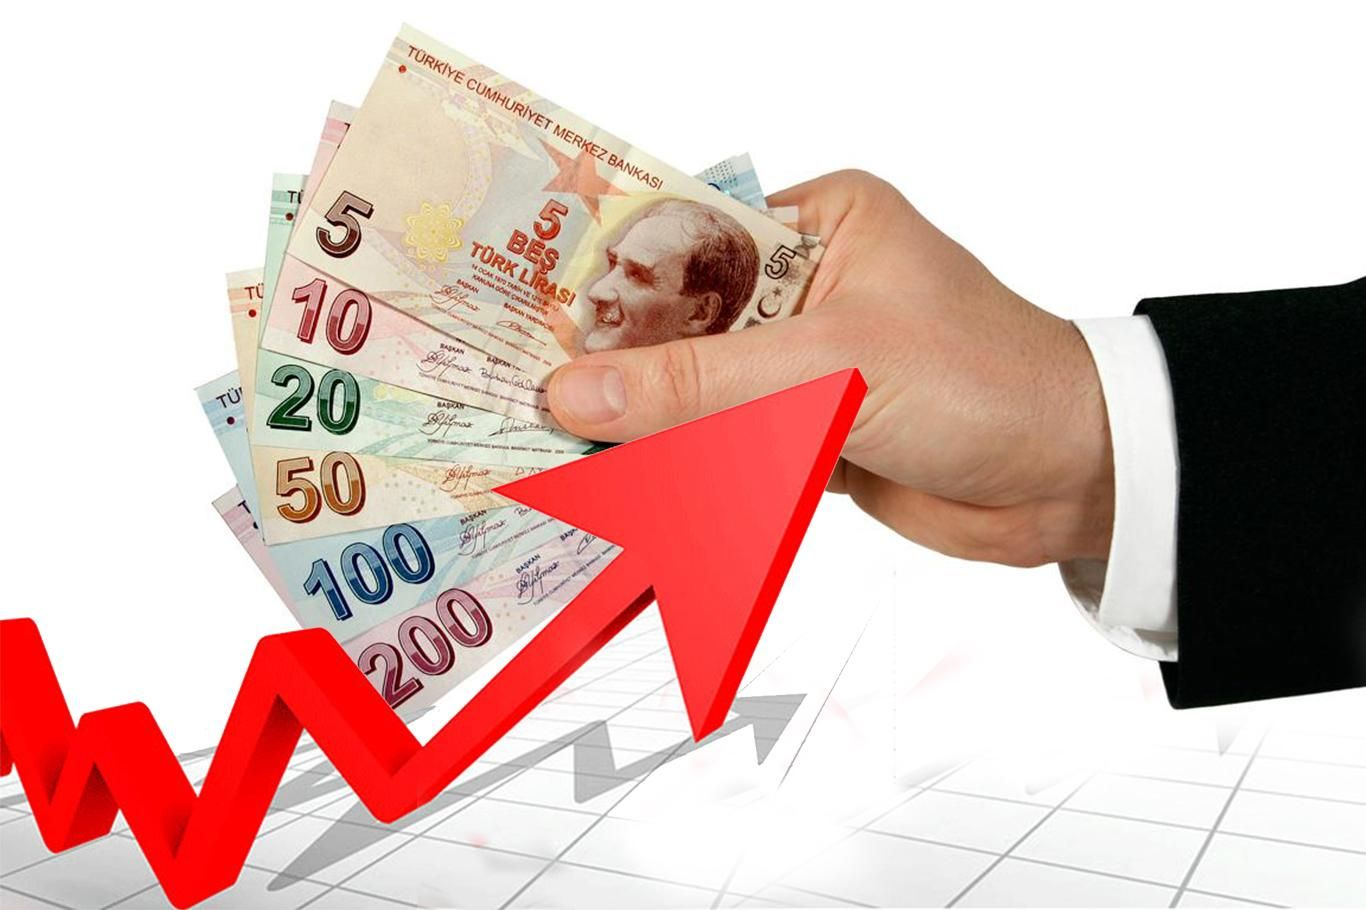 Turkey's Forecasting an Annual Growth Rate of 5.5% Until 2020